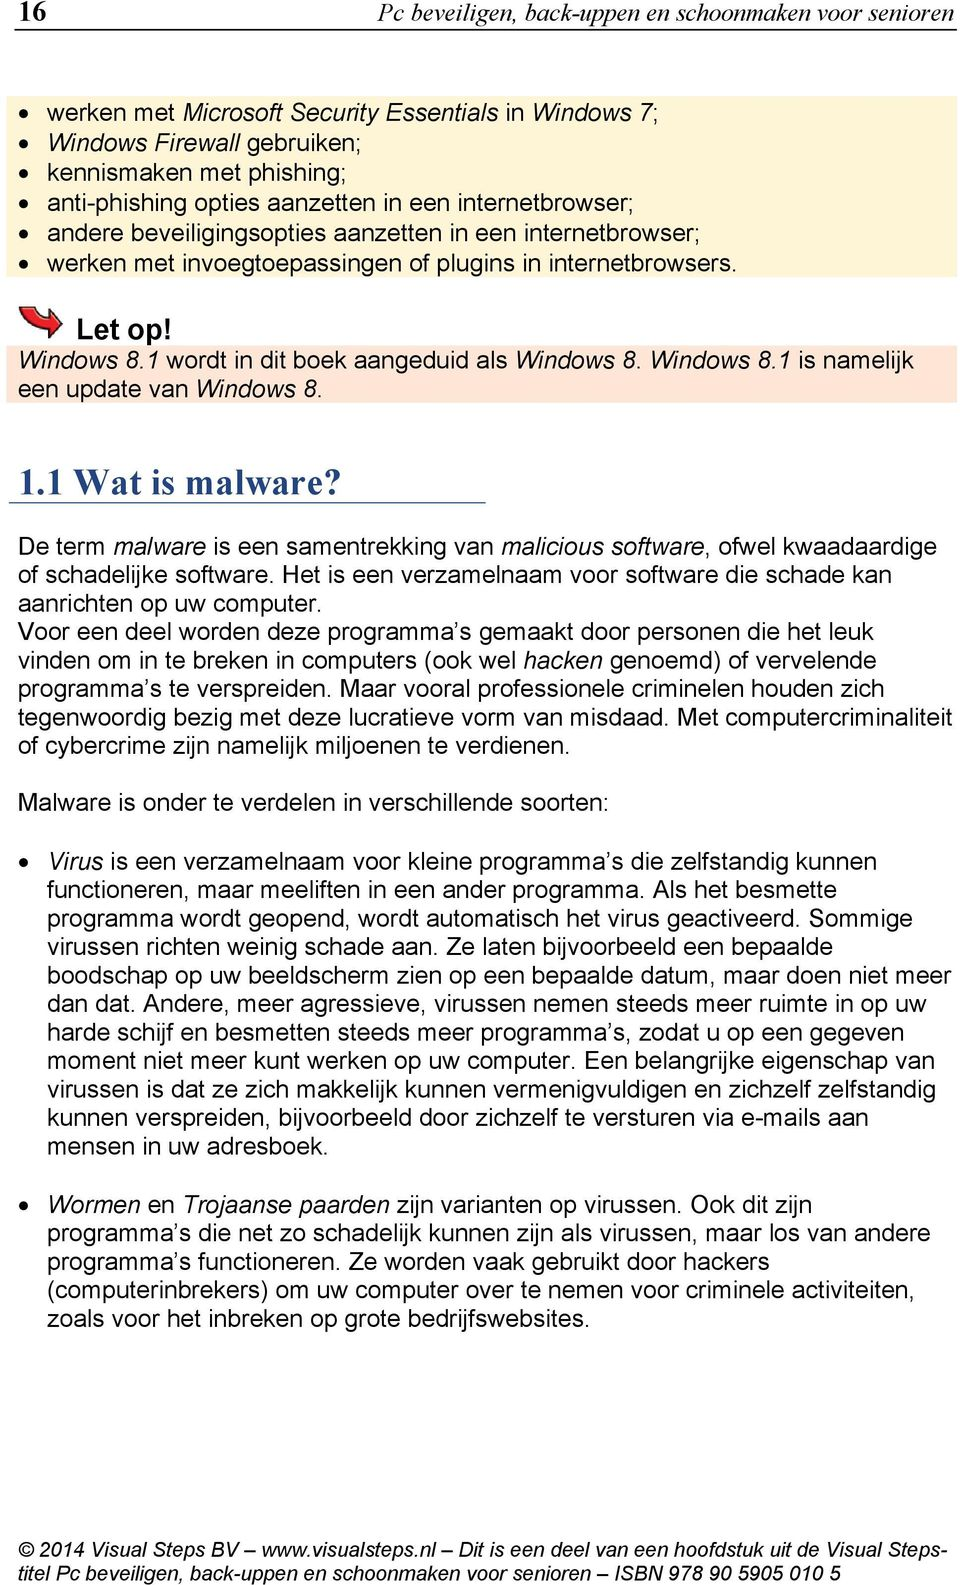 1 wordt in dit boek aangeduid als Windows 8. Windows 8.1 is namelijk een update van Windows 8. 1.1 Wat is malware?